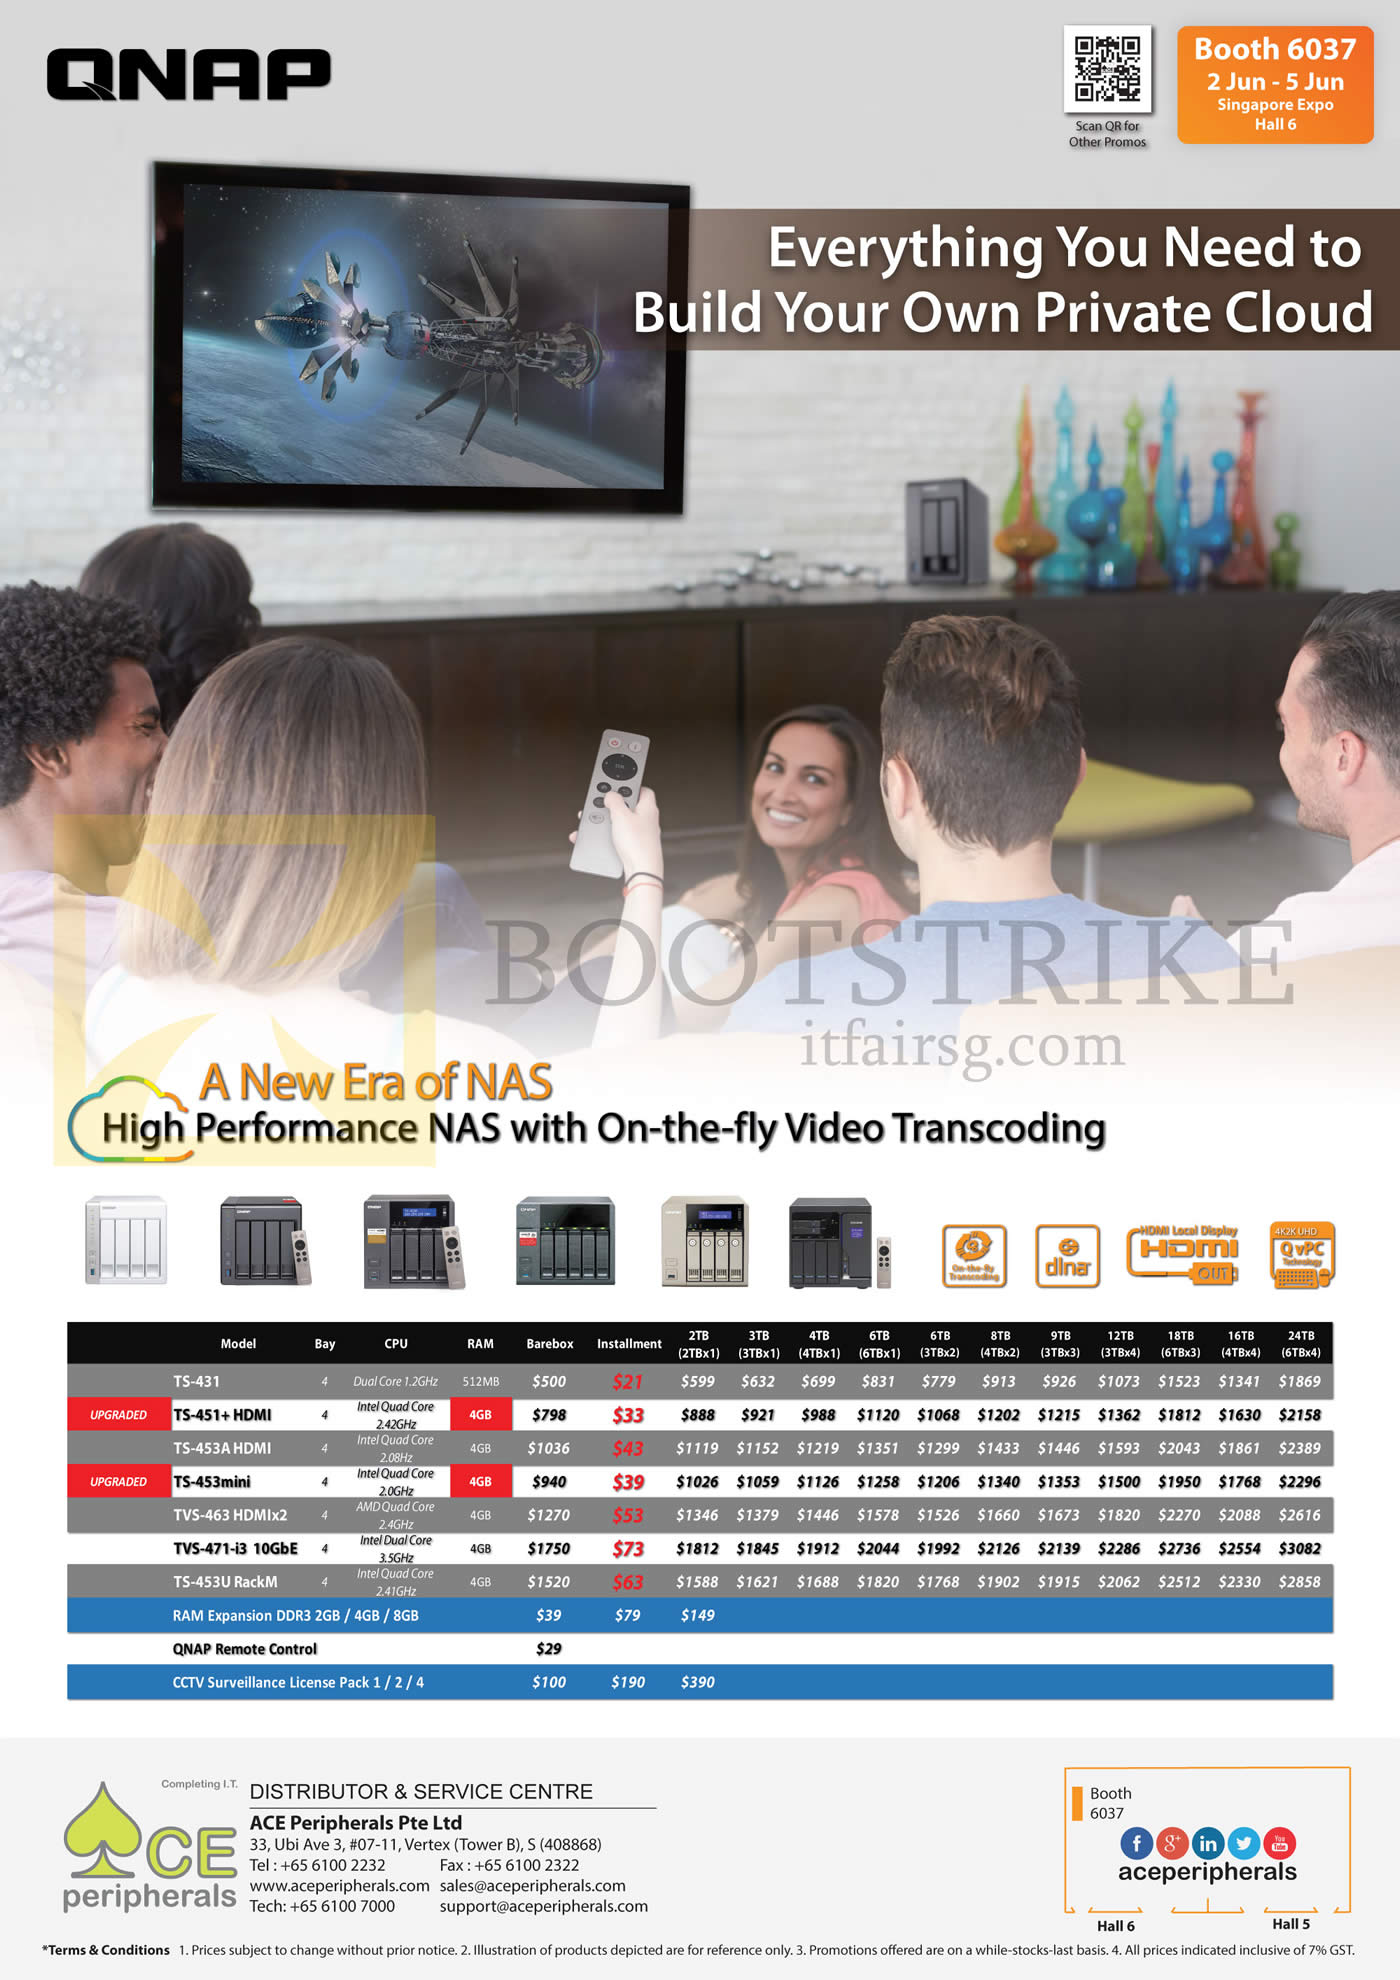 PC SHOW 2016 price list image brochure of ACE Peripherals NAS QNAP TS-431, 451, 451Plus, 453AHDMI, TVS-453mini, TVS 463, TVS 471, TS-453U Rack M, RAM Expansion DDR3, QNAP Remote Control, CCTV